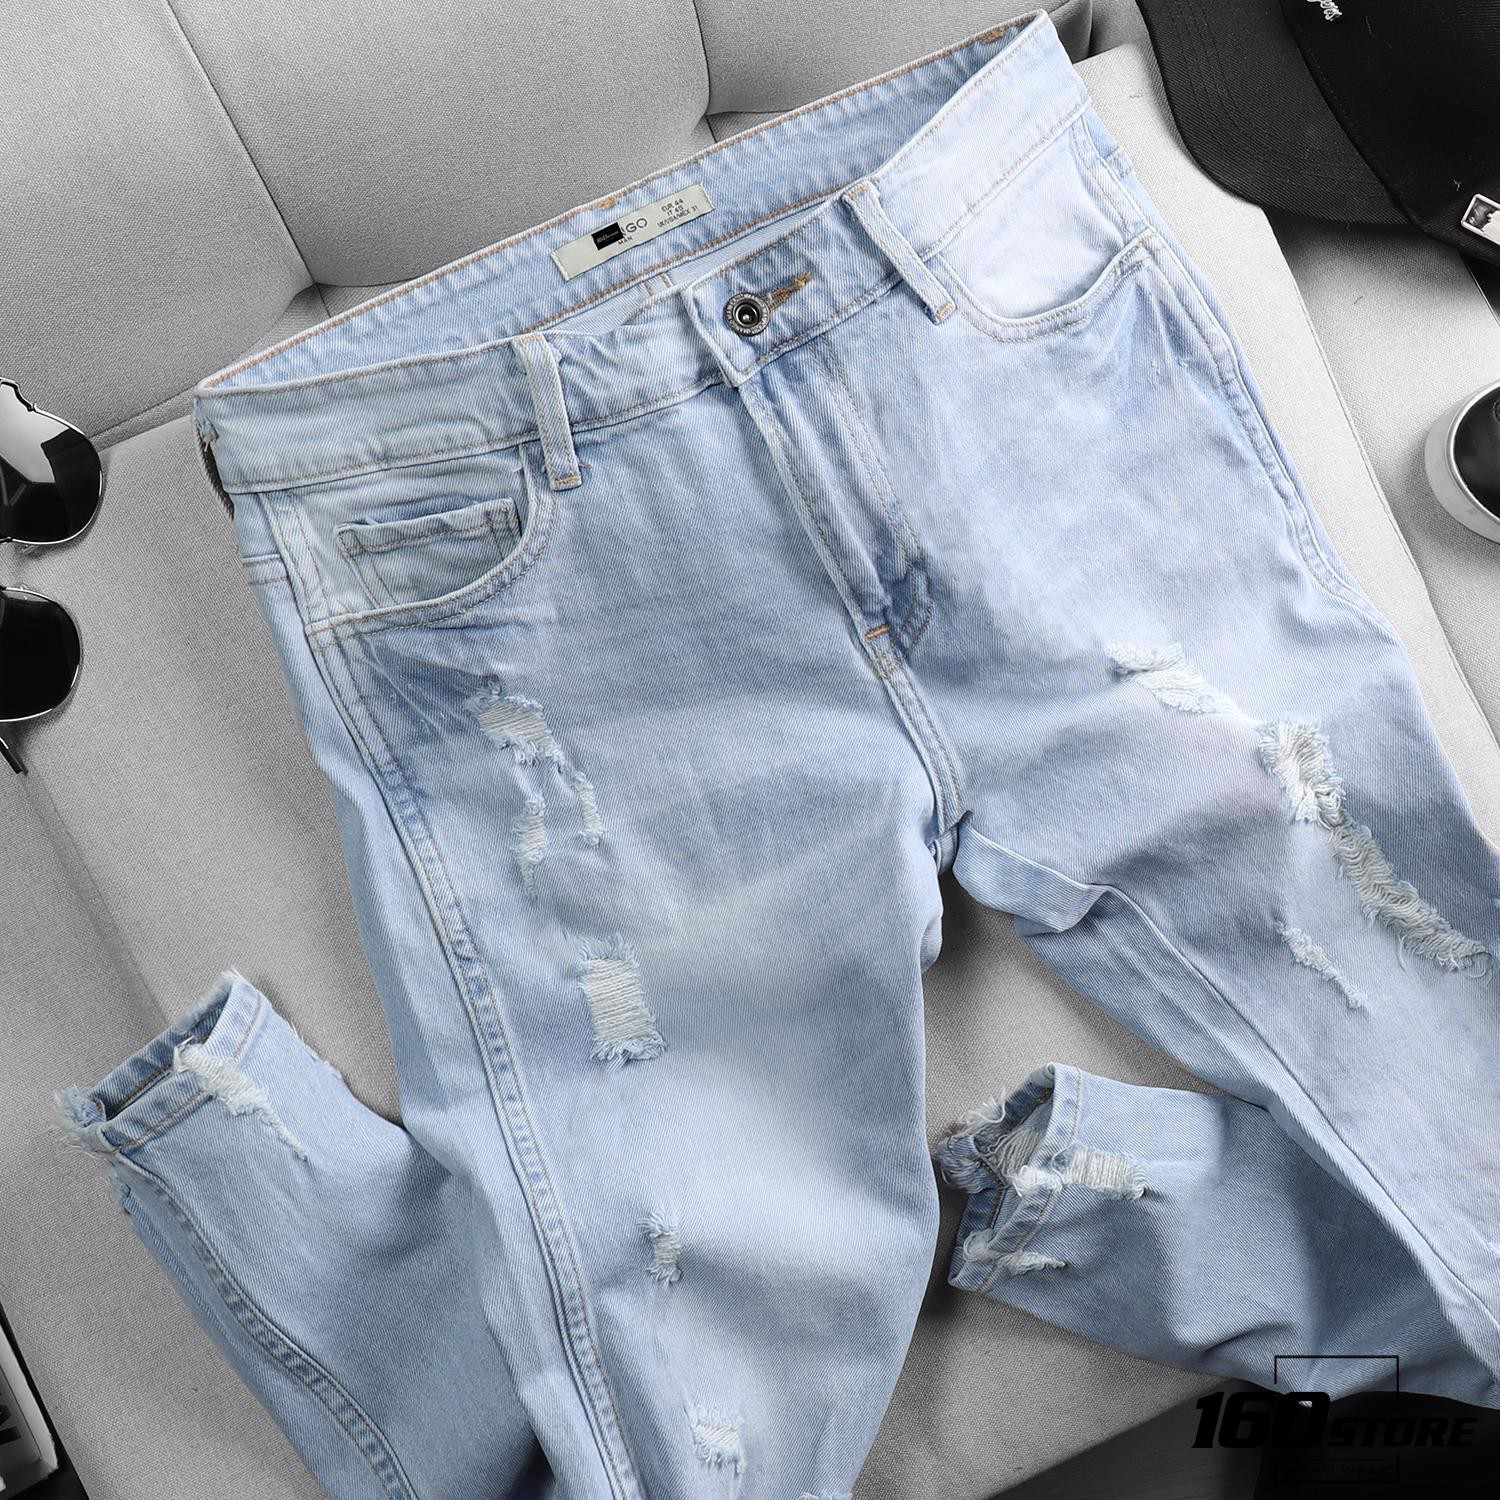 Quần jean M.N.G light blue ripped